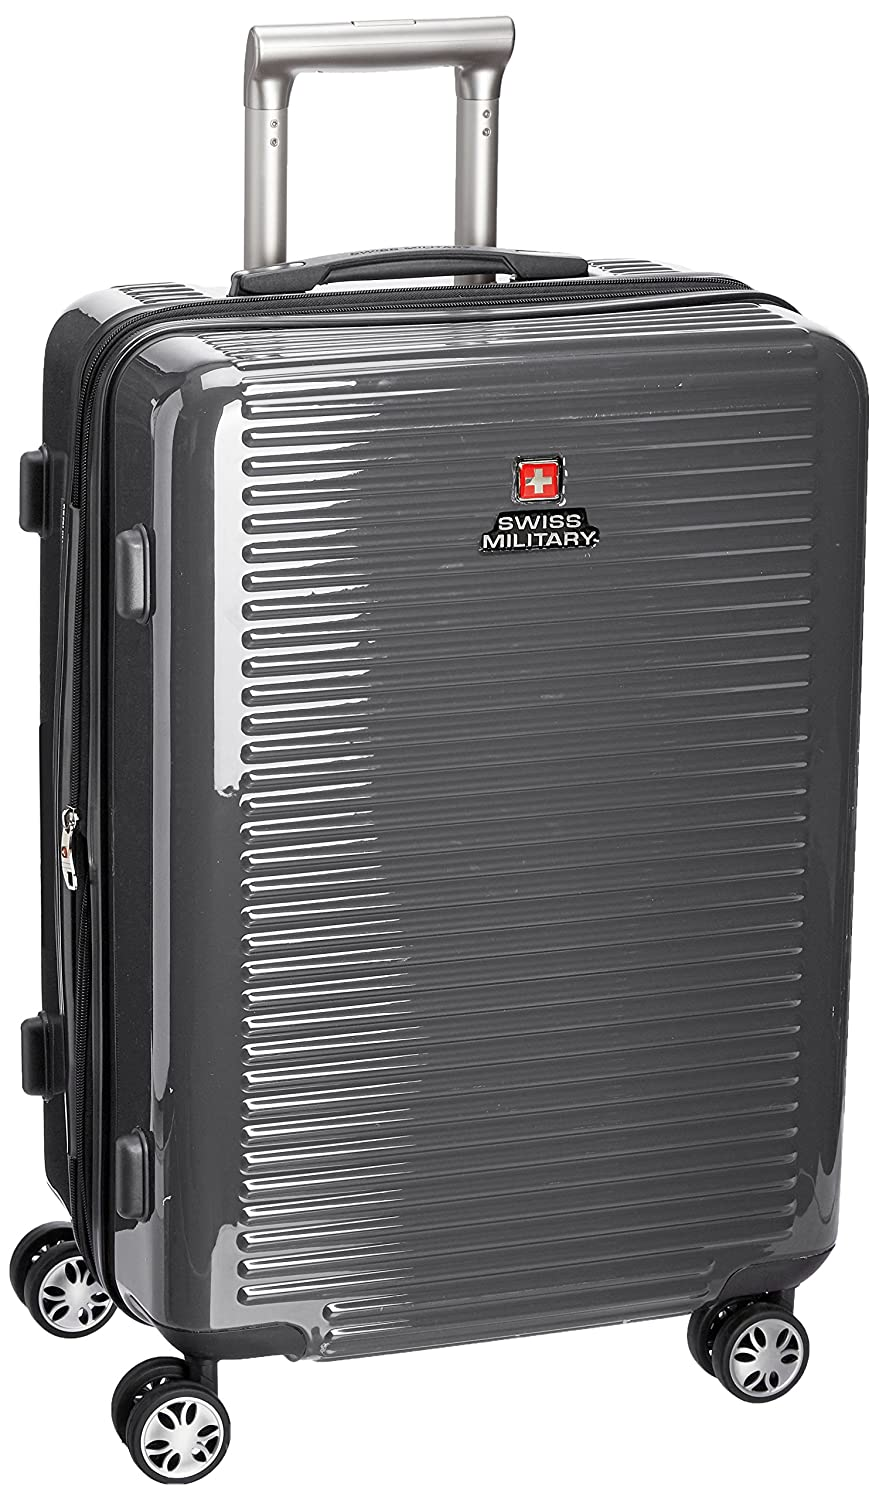 Swiss Military Polycarbonate 46 cms Grey Hardsided Check-in Luggage (HTL23)